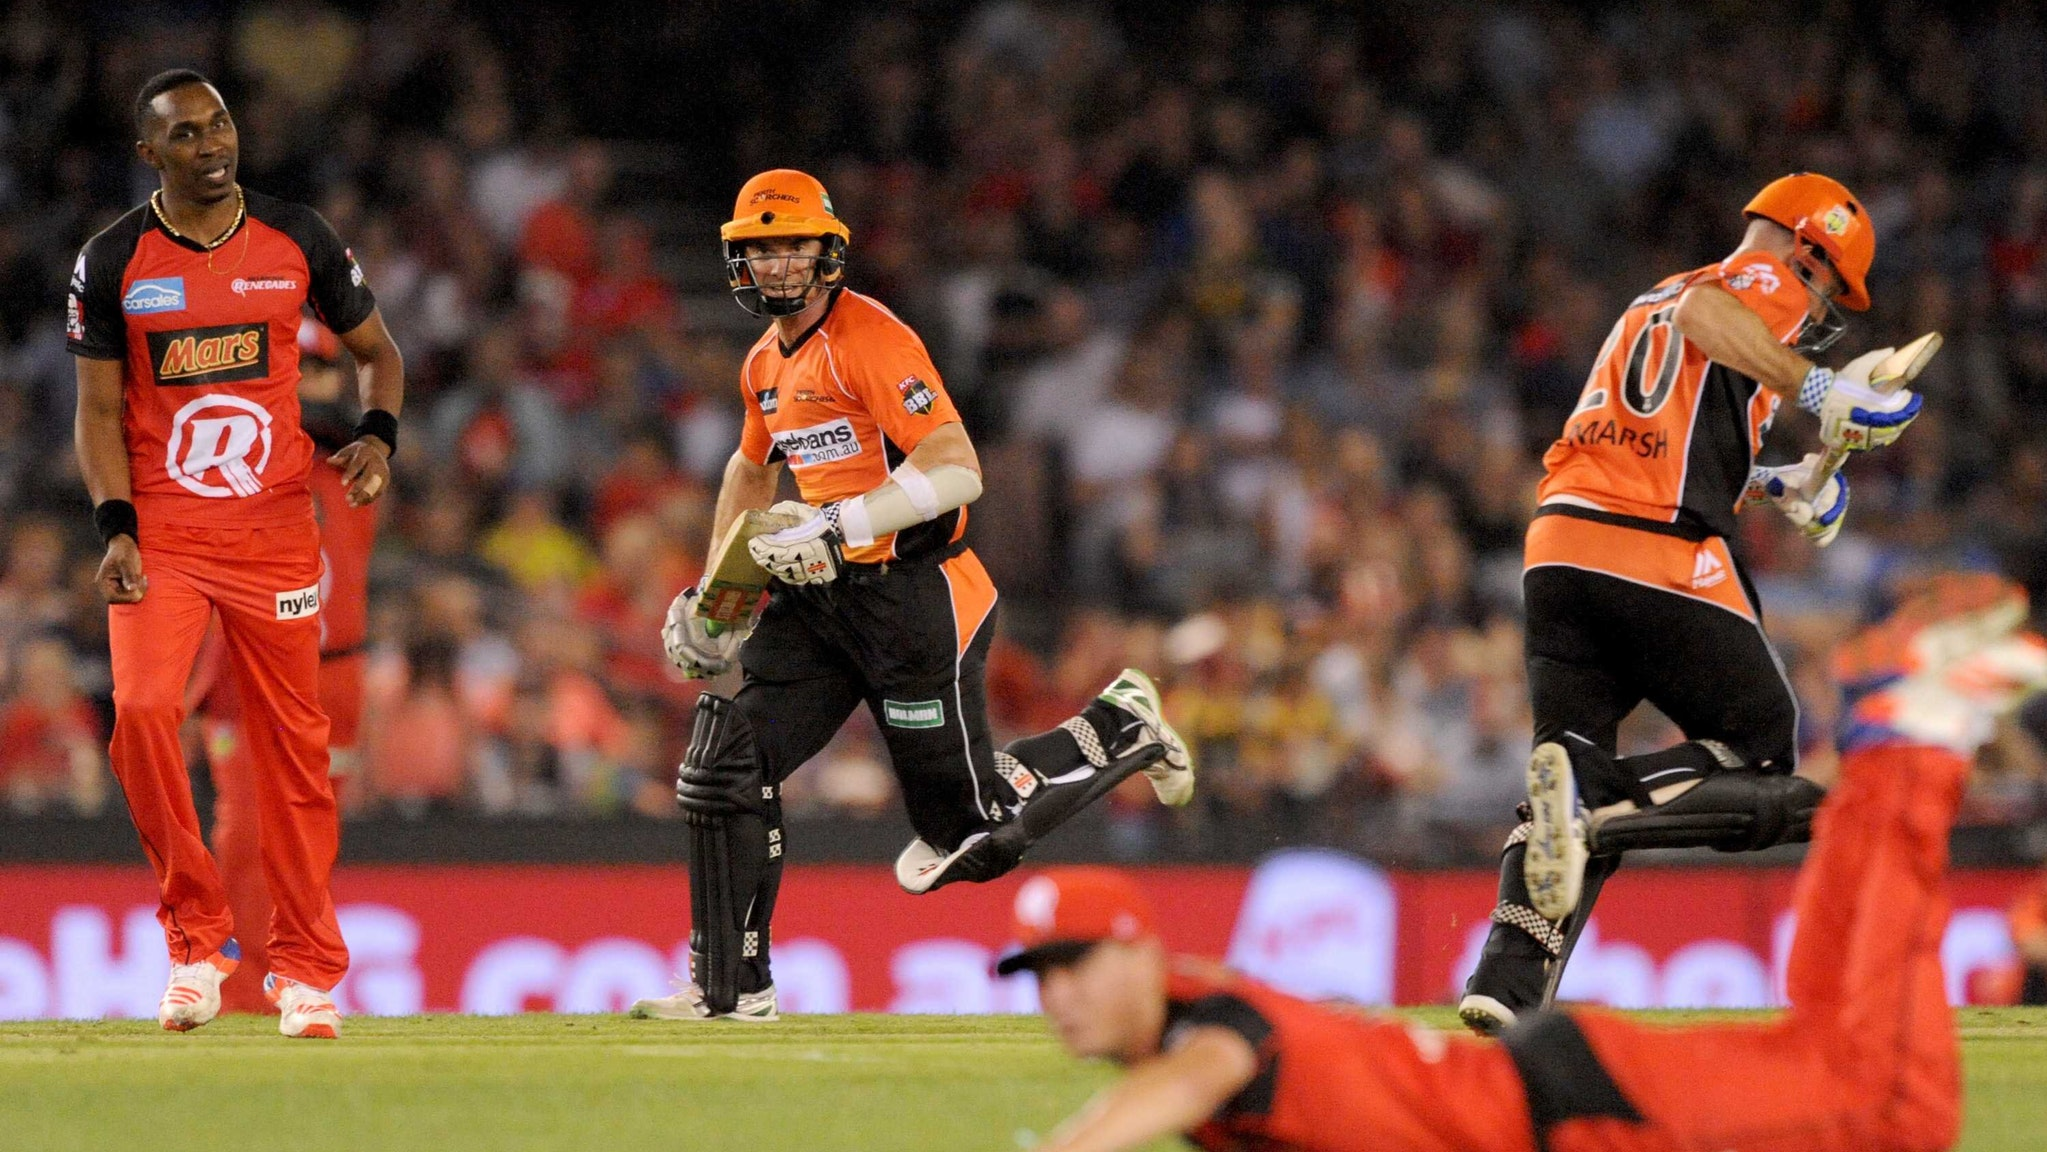 Renegades vs Scorchers